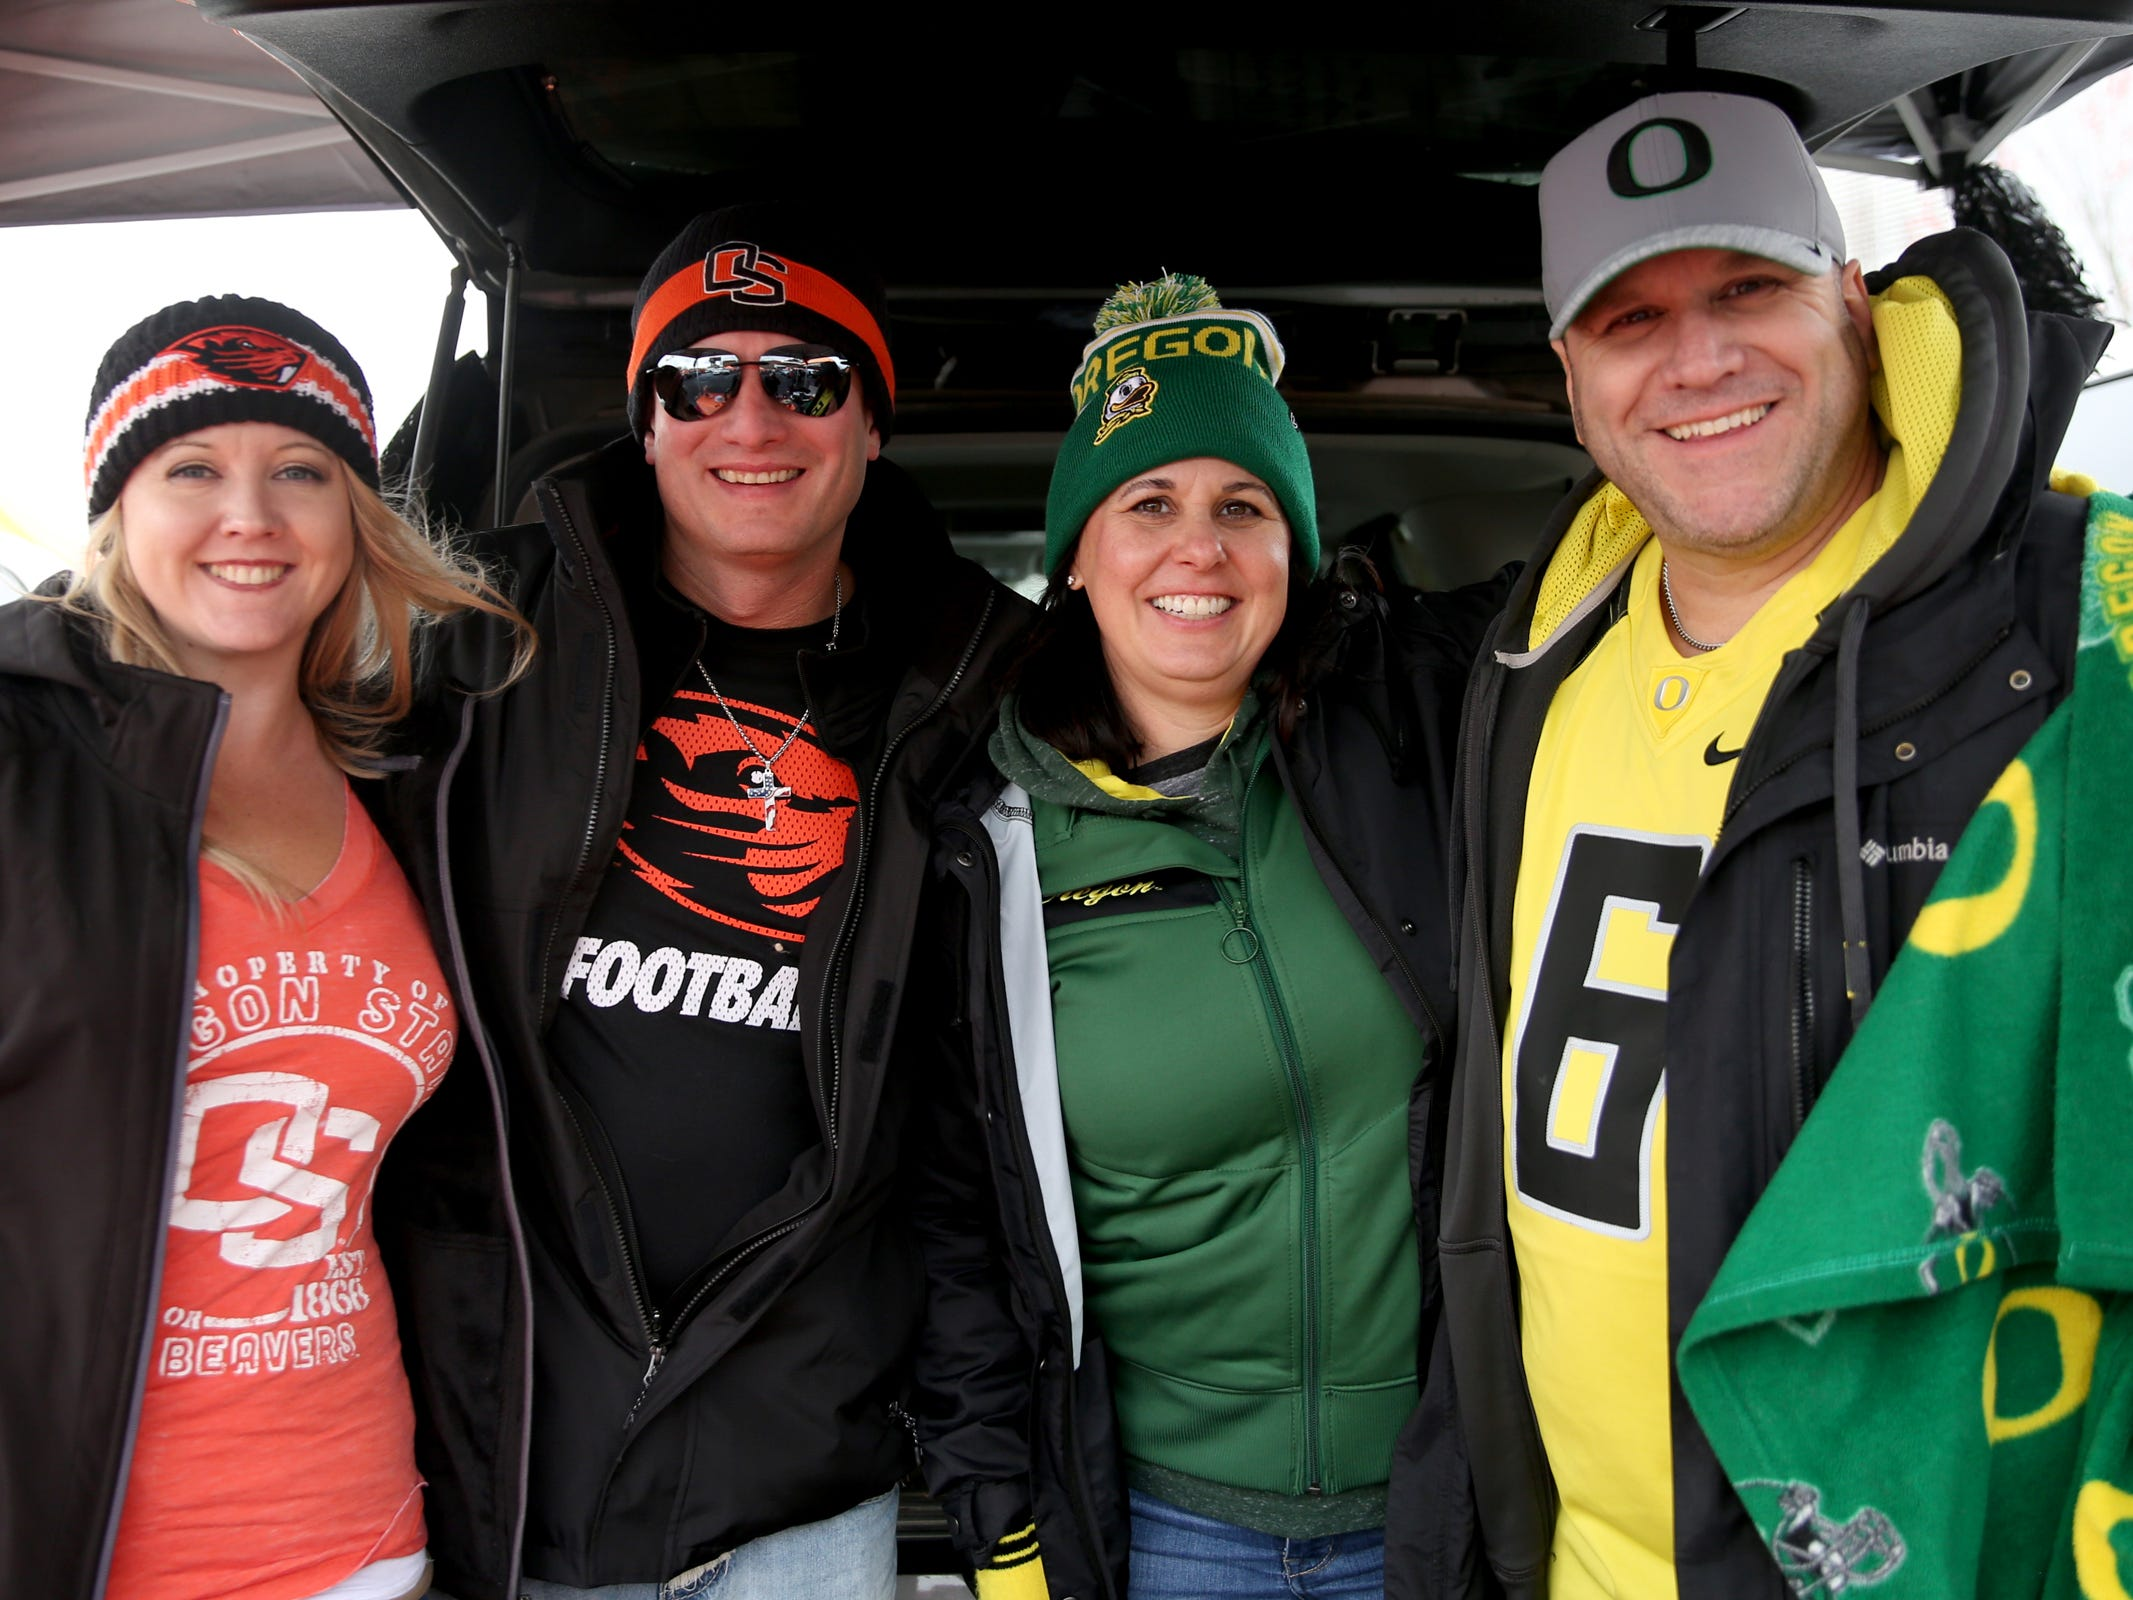 Friends Tanya Williams, from left, Jason Williams, both of Albany, Amy Presley and Chad Presley, both of Forest Grove, root for different teams before the start of the Oregon vs. Oregon State Civil war football game at Oregon State University in Corvallis on Friday, Nov. 23, 2018.